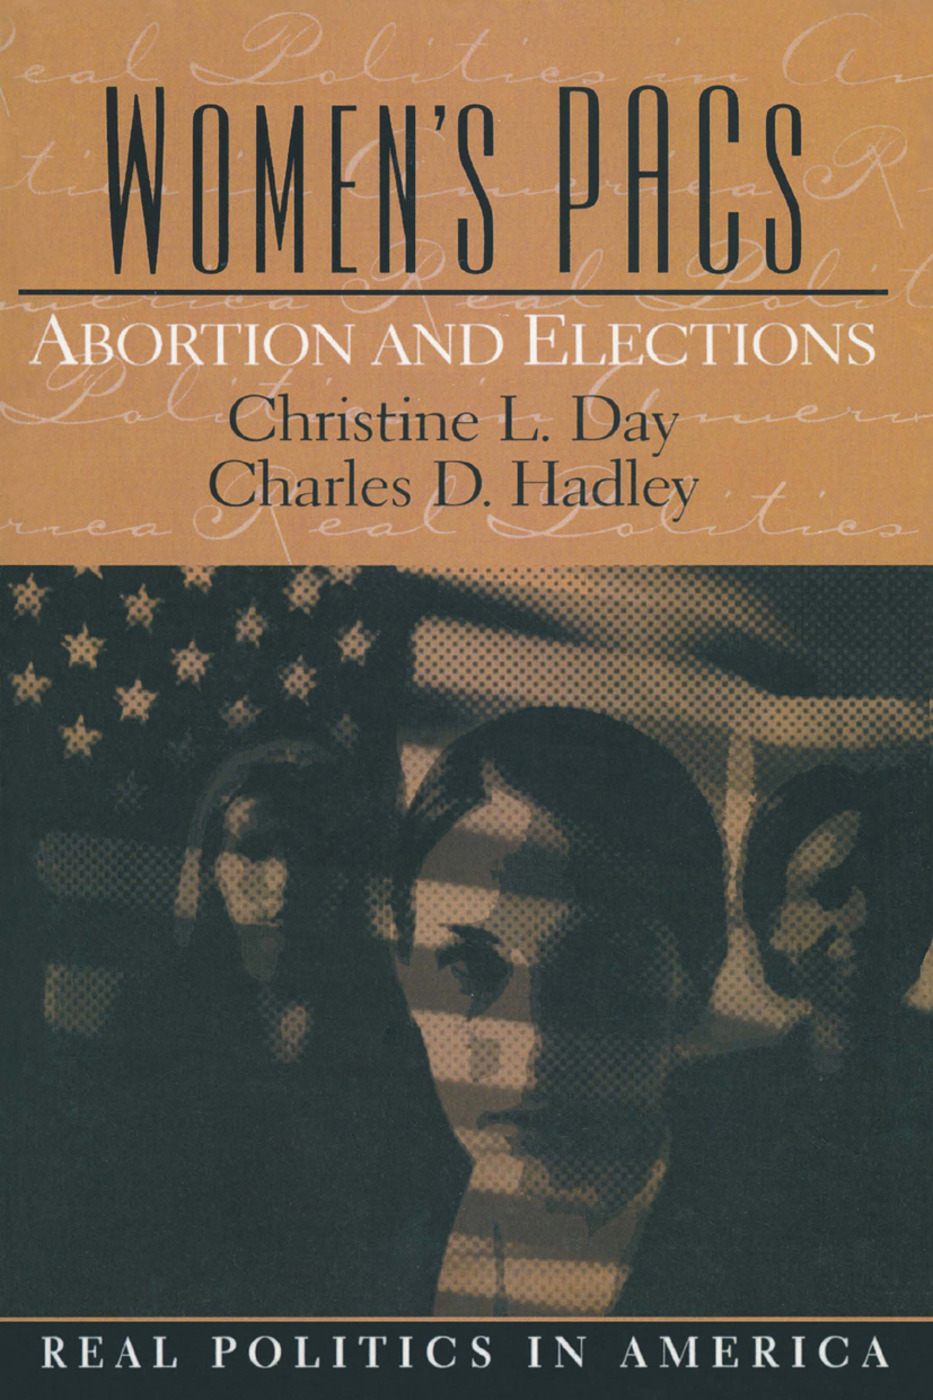 Women's PAC's: Abortion and Elections, 1st Edition (Paperback) book cover